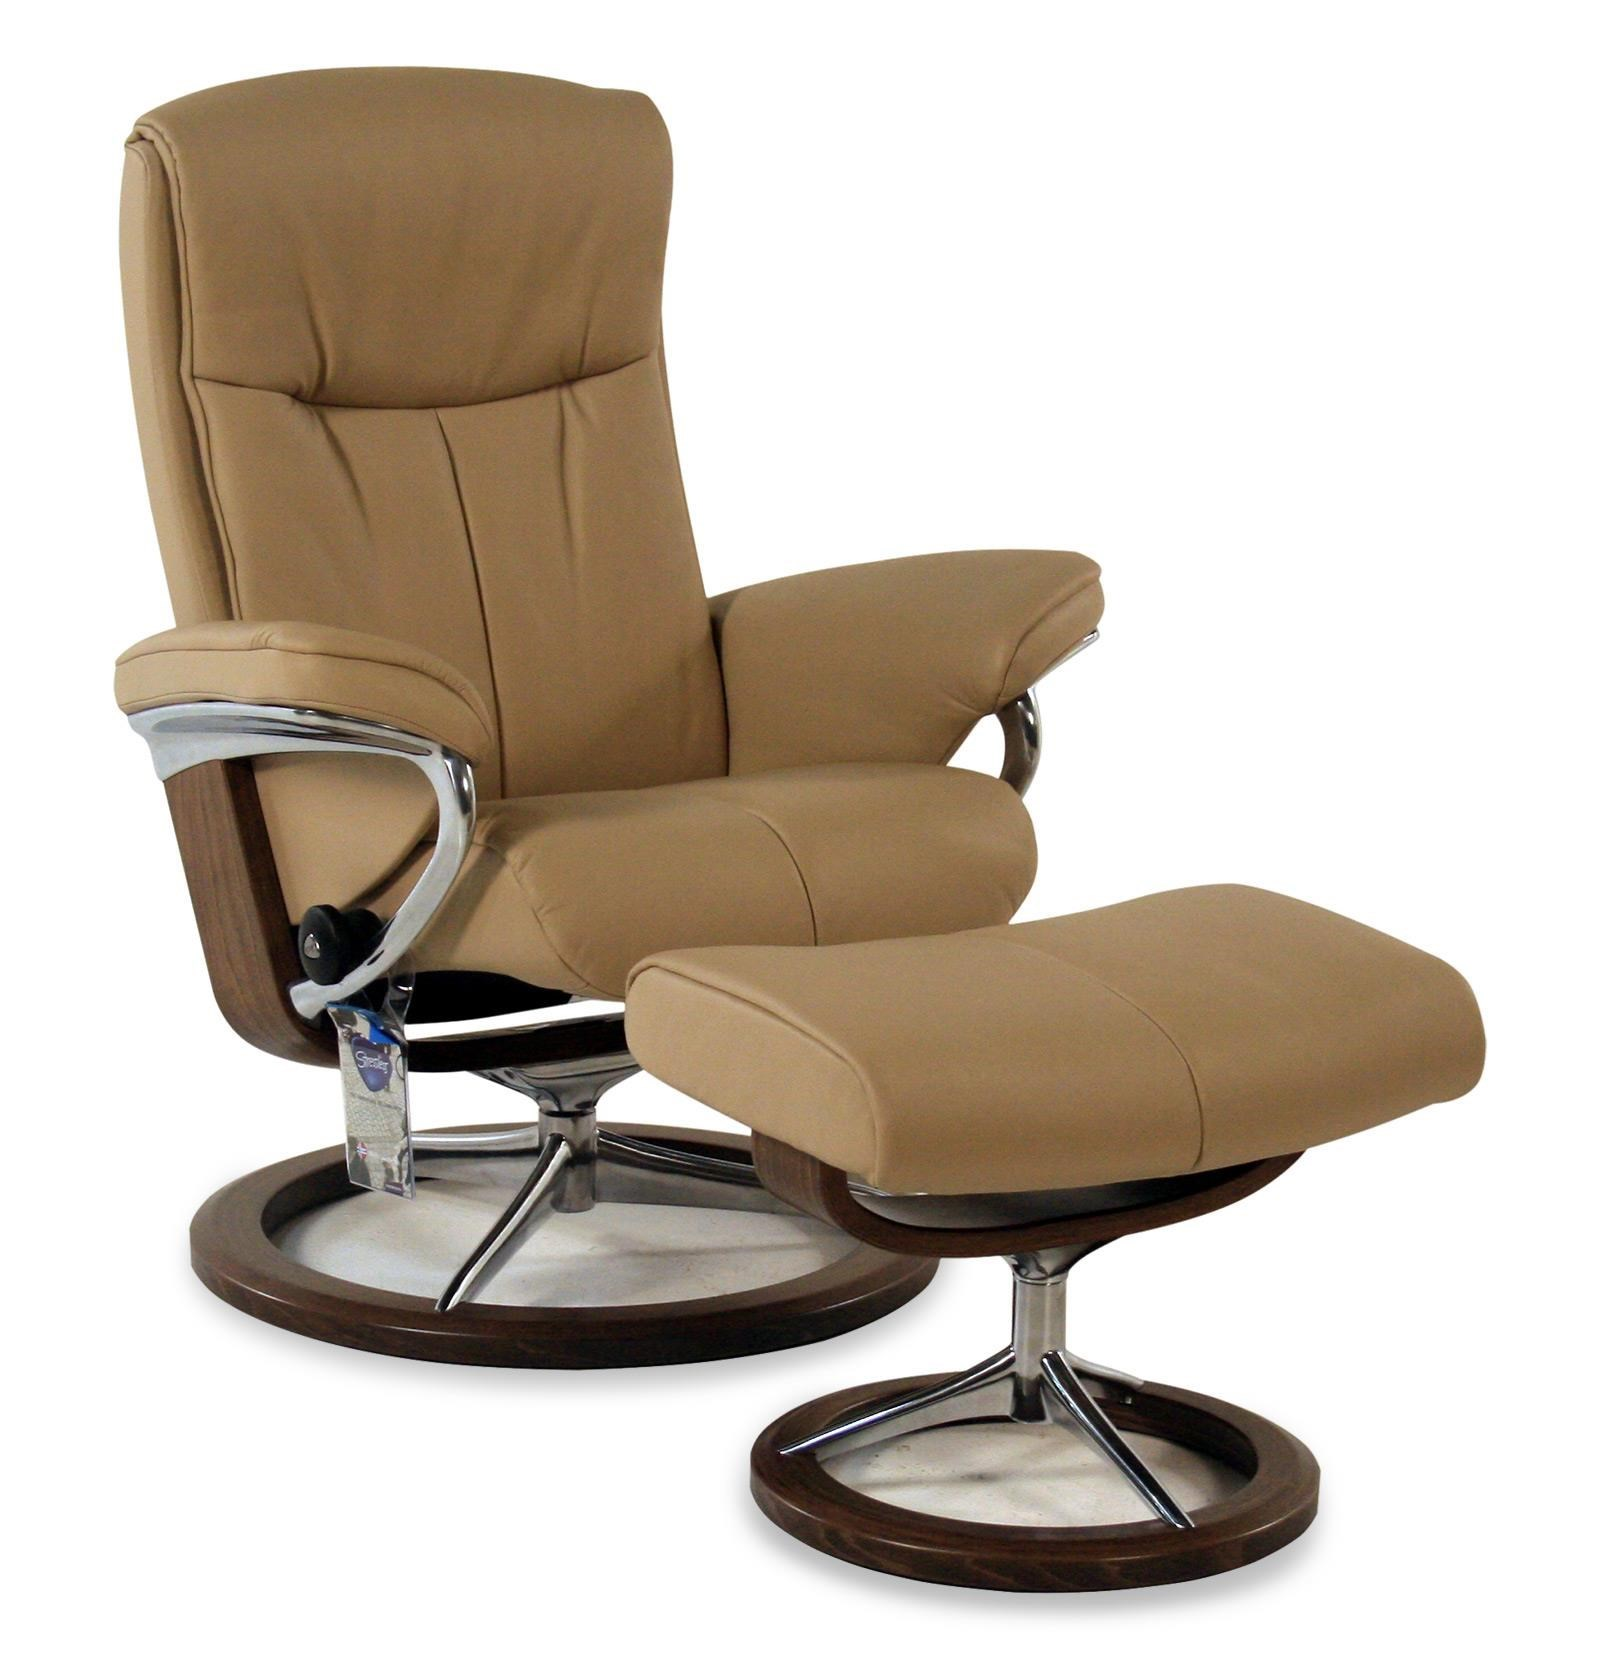 Stressless By Ekornes PeaceSmall Signature Chair